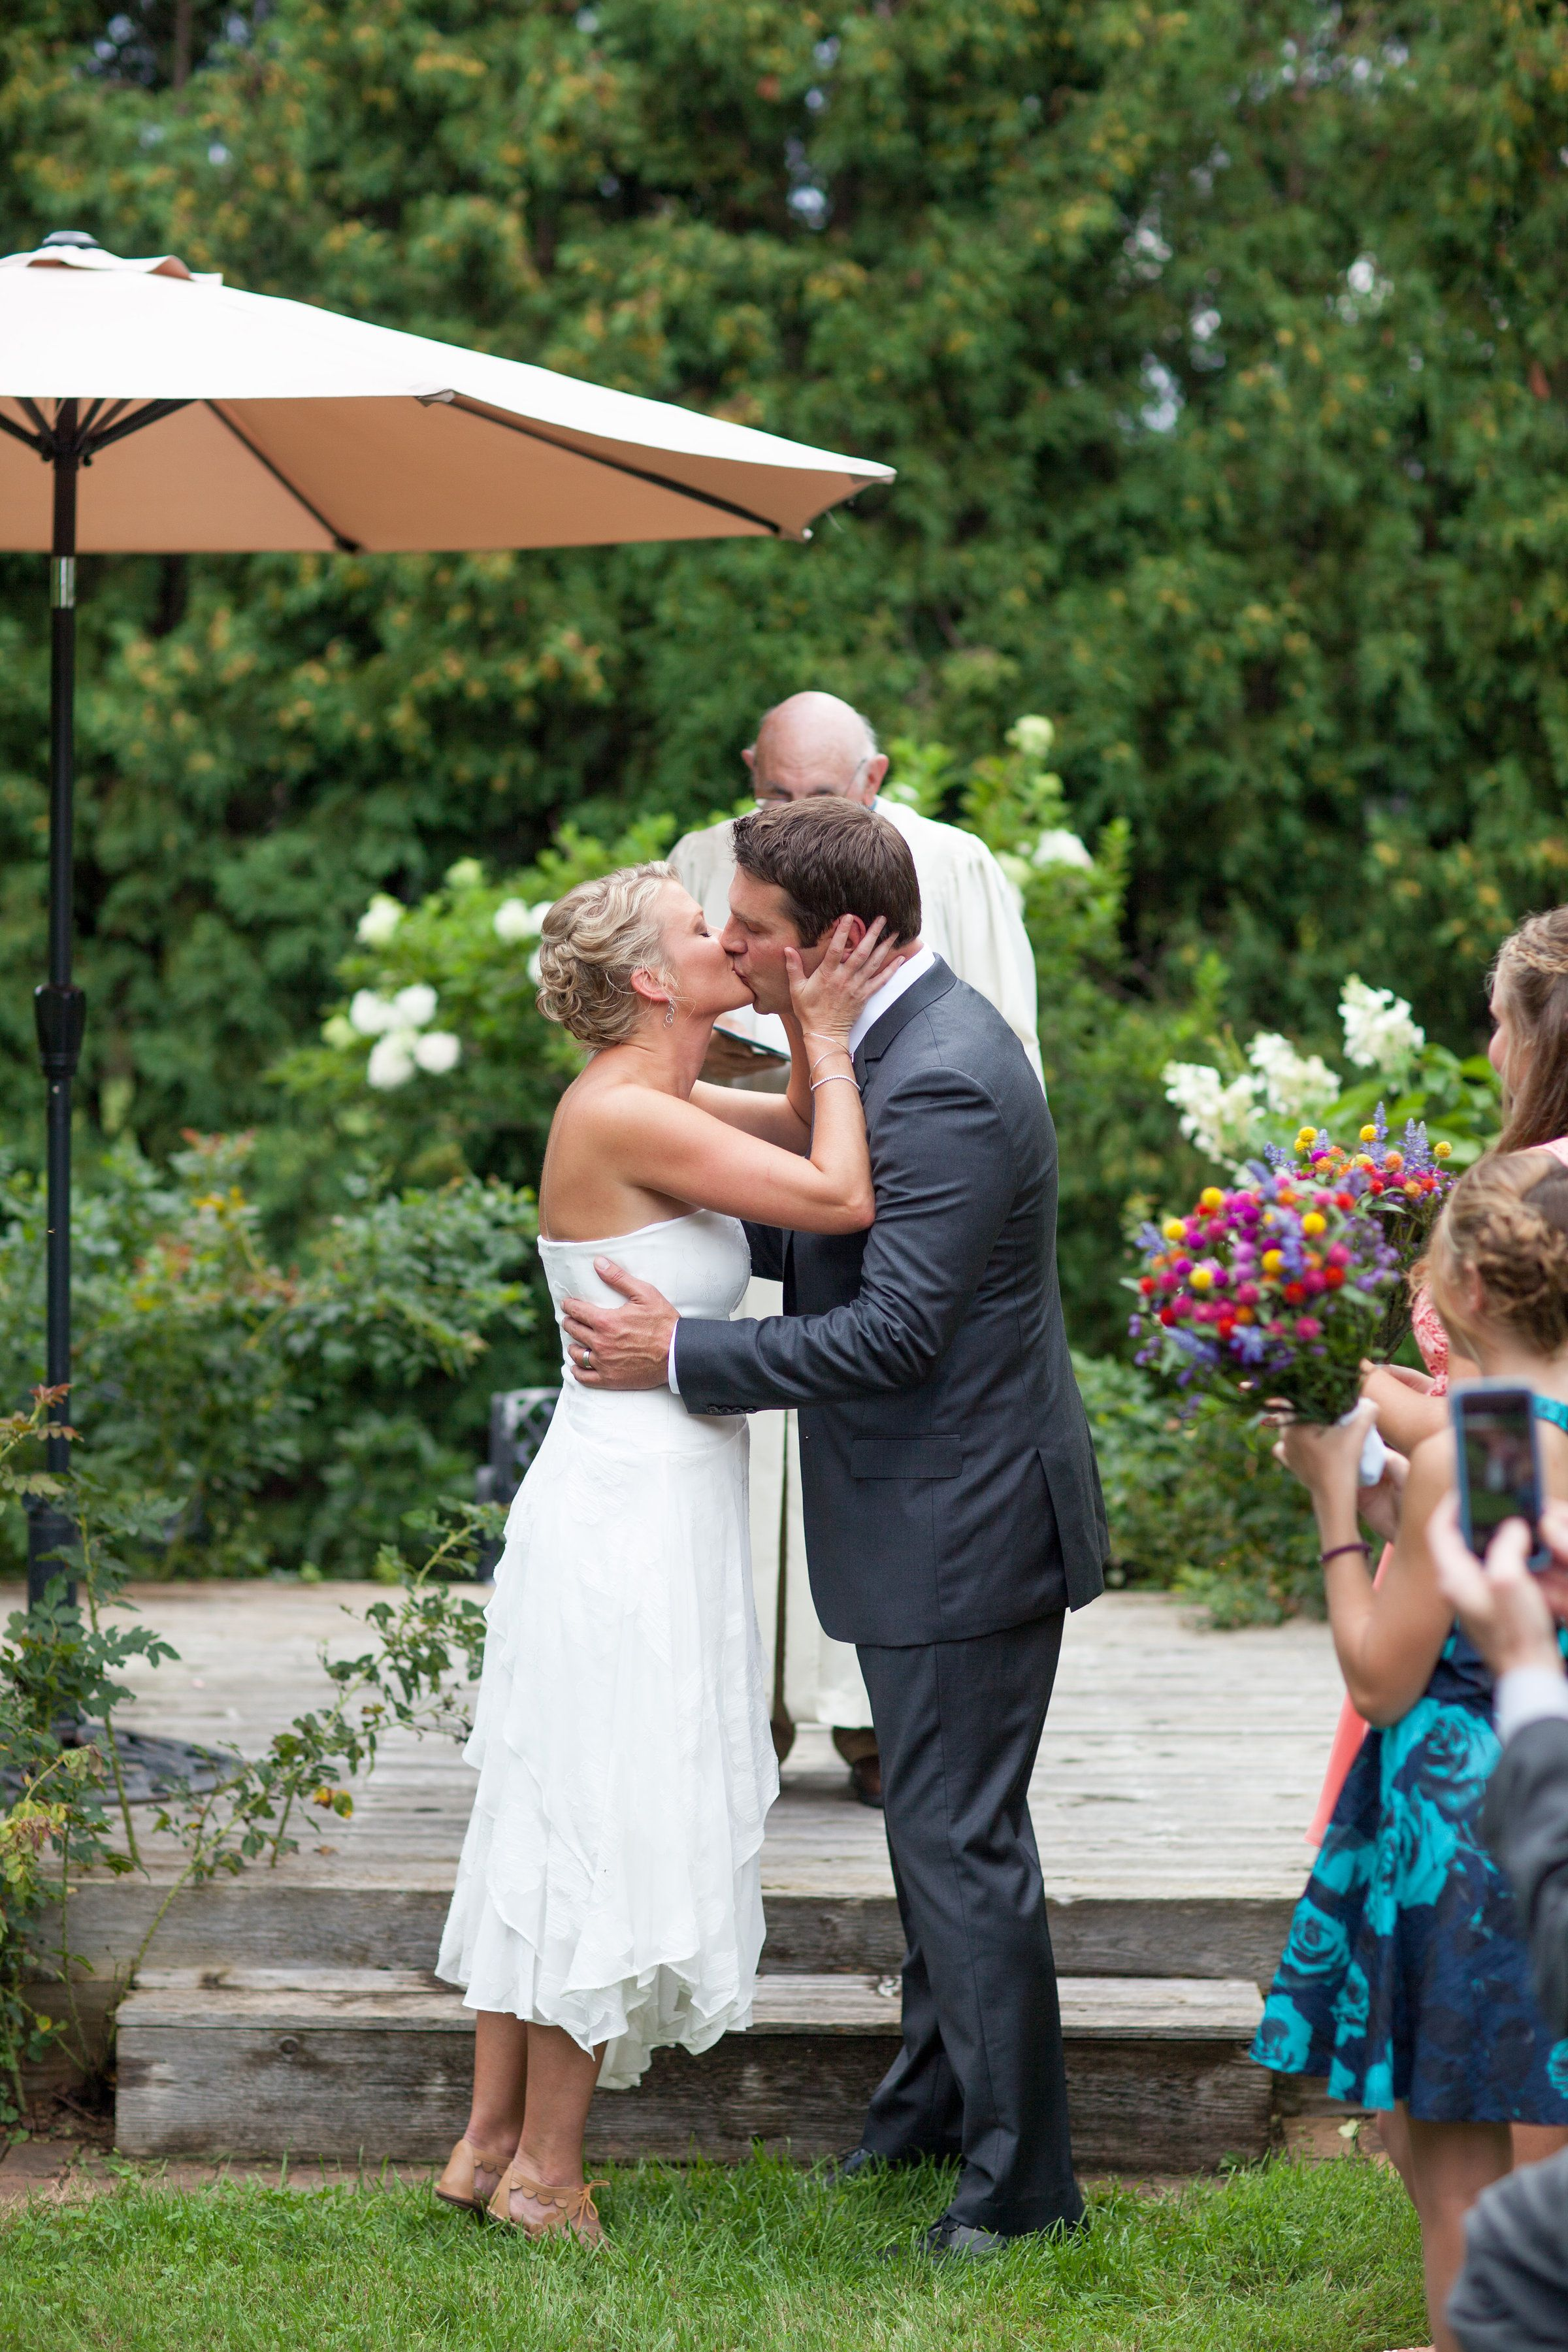 Garden wedding ceremony at The Carriage House in South